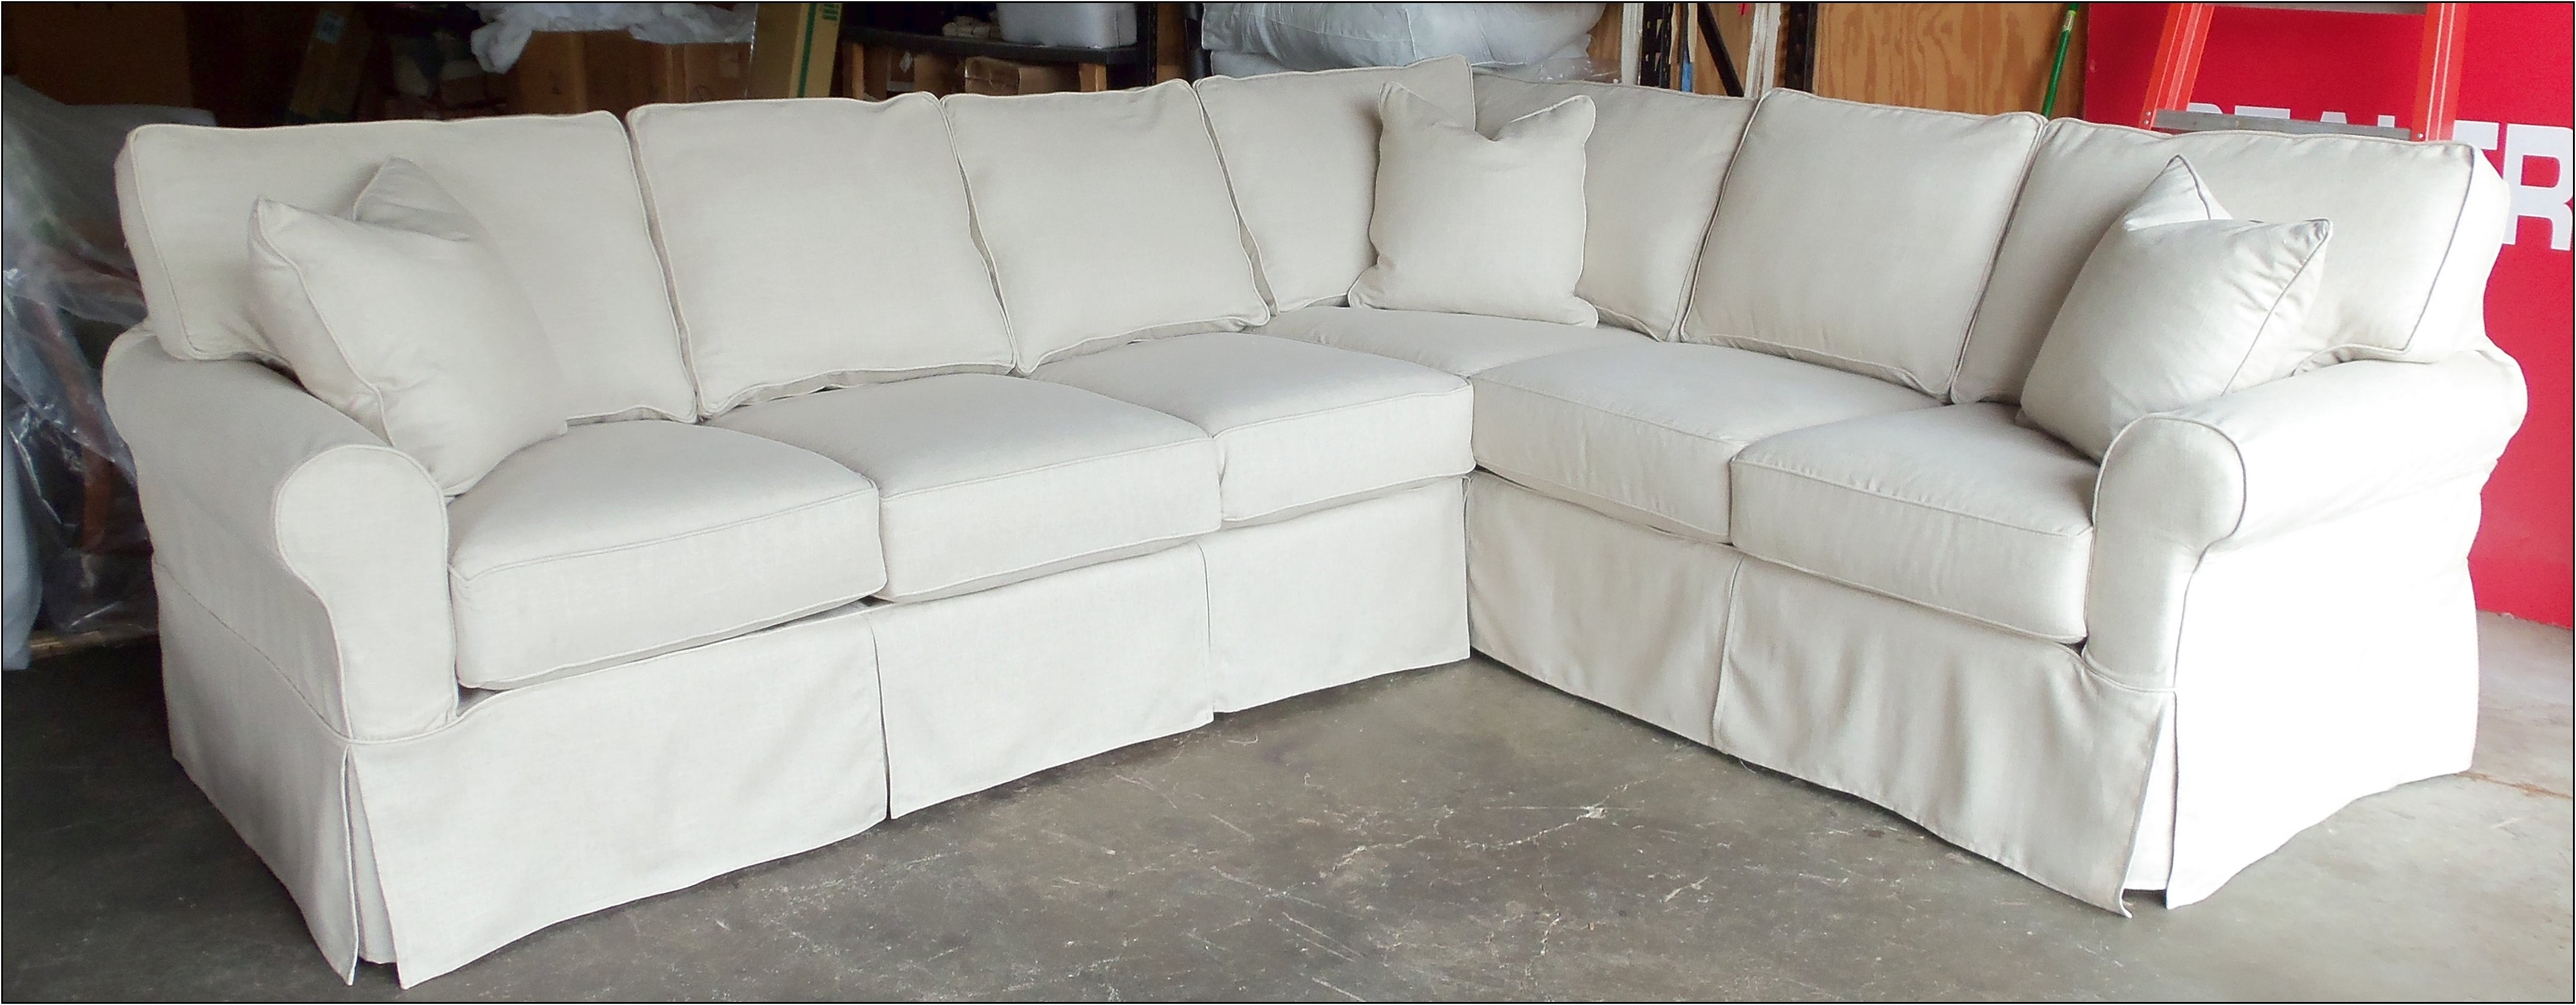 Easy White Sectional Sofa For Awesome Cheap White Sectional Sofa 21 In White Sectional Sofas (Image 2 of 10)